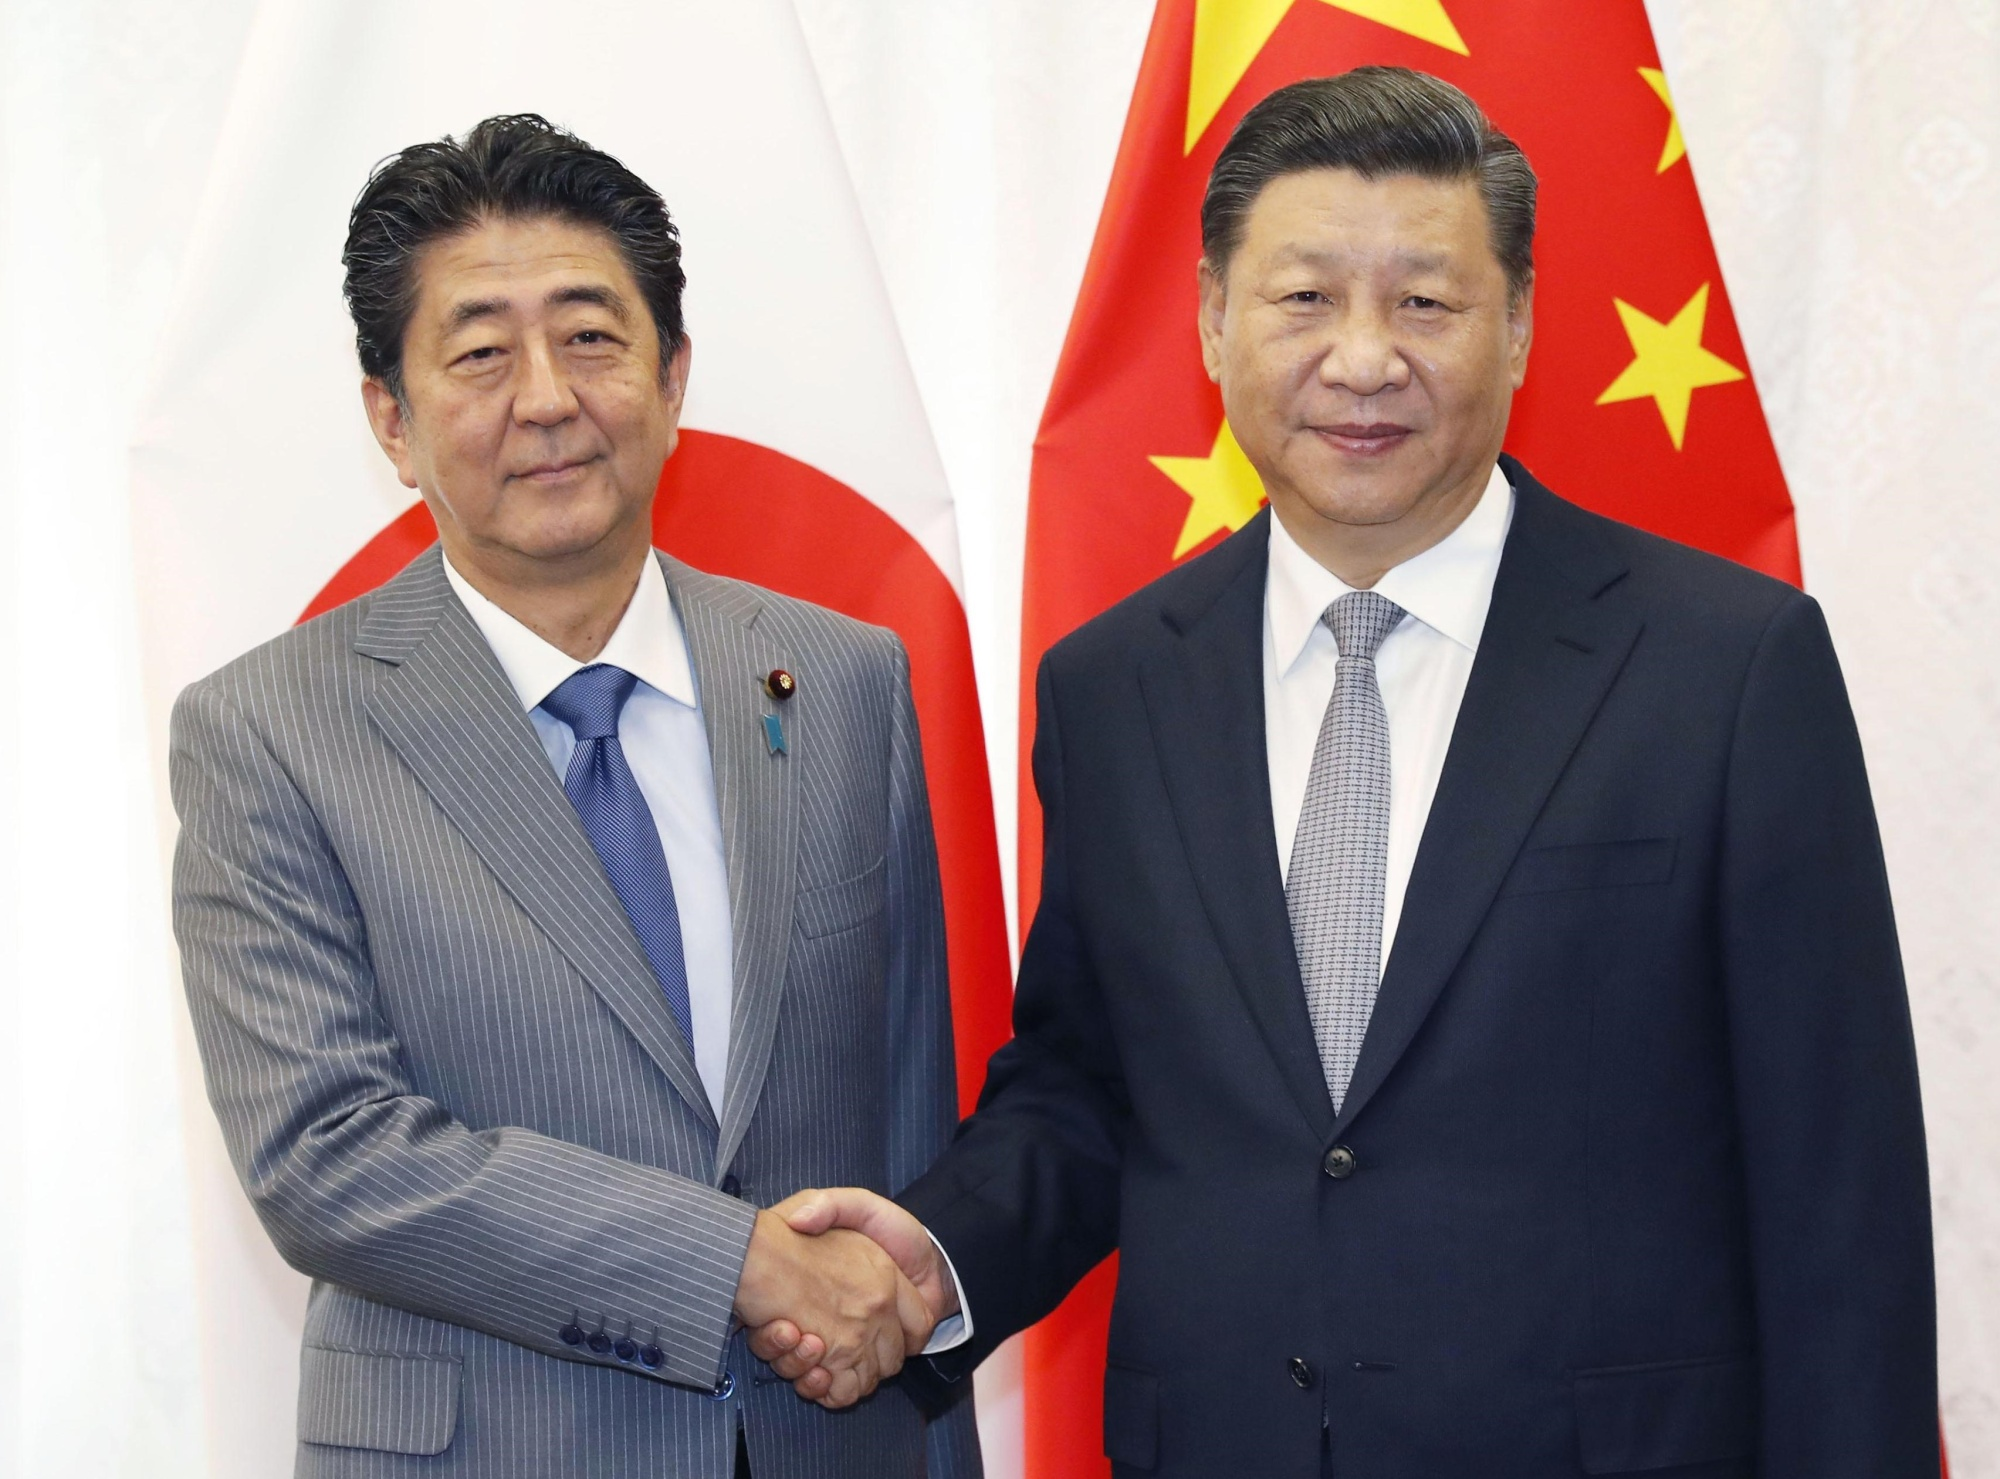 Prime Minister Shinzo Abe and Chinese President Xi Jinping shake hands Wednesday at a meeting held in Vladivostok, Russia. | KYODO